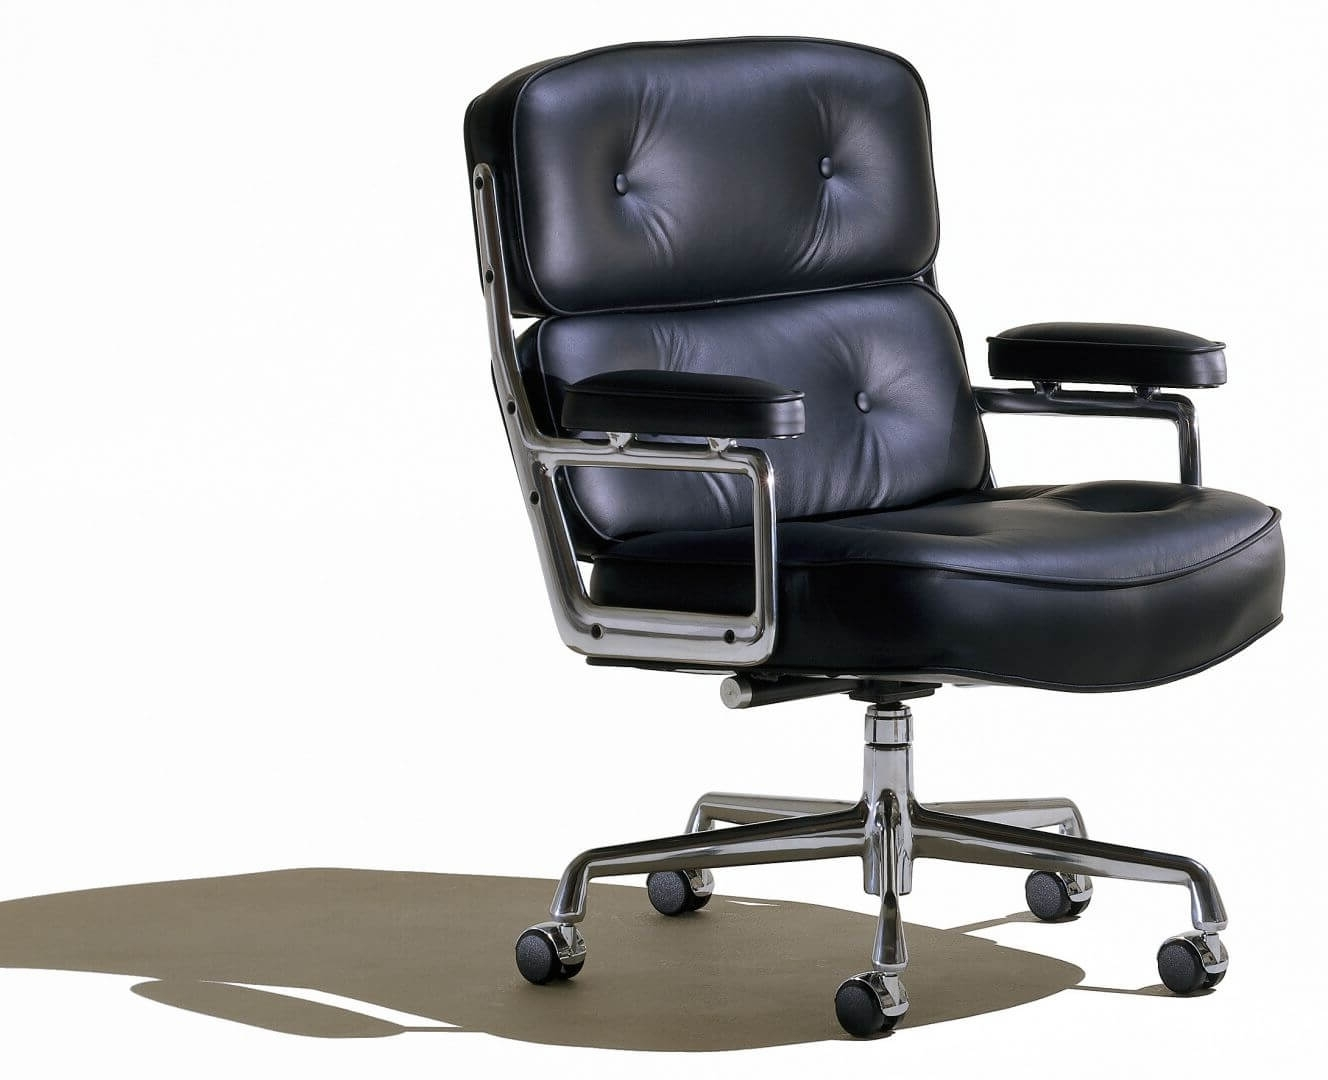 Widely Used Office Chair Guide & How To Buy A Desk Chair + Top 10 Chairs With Regard To High End Executive Office Chairs (View 7 of 20)